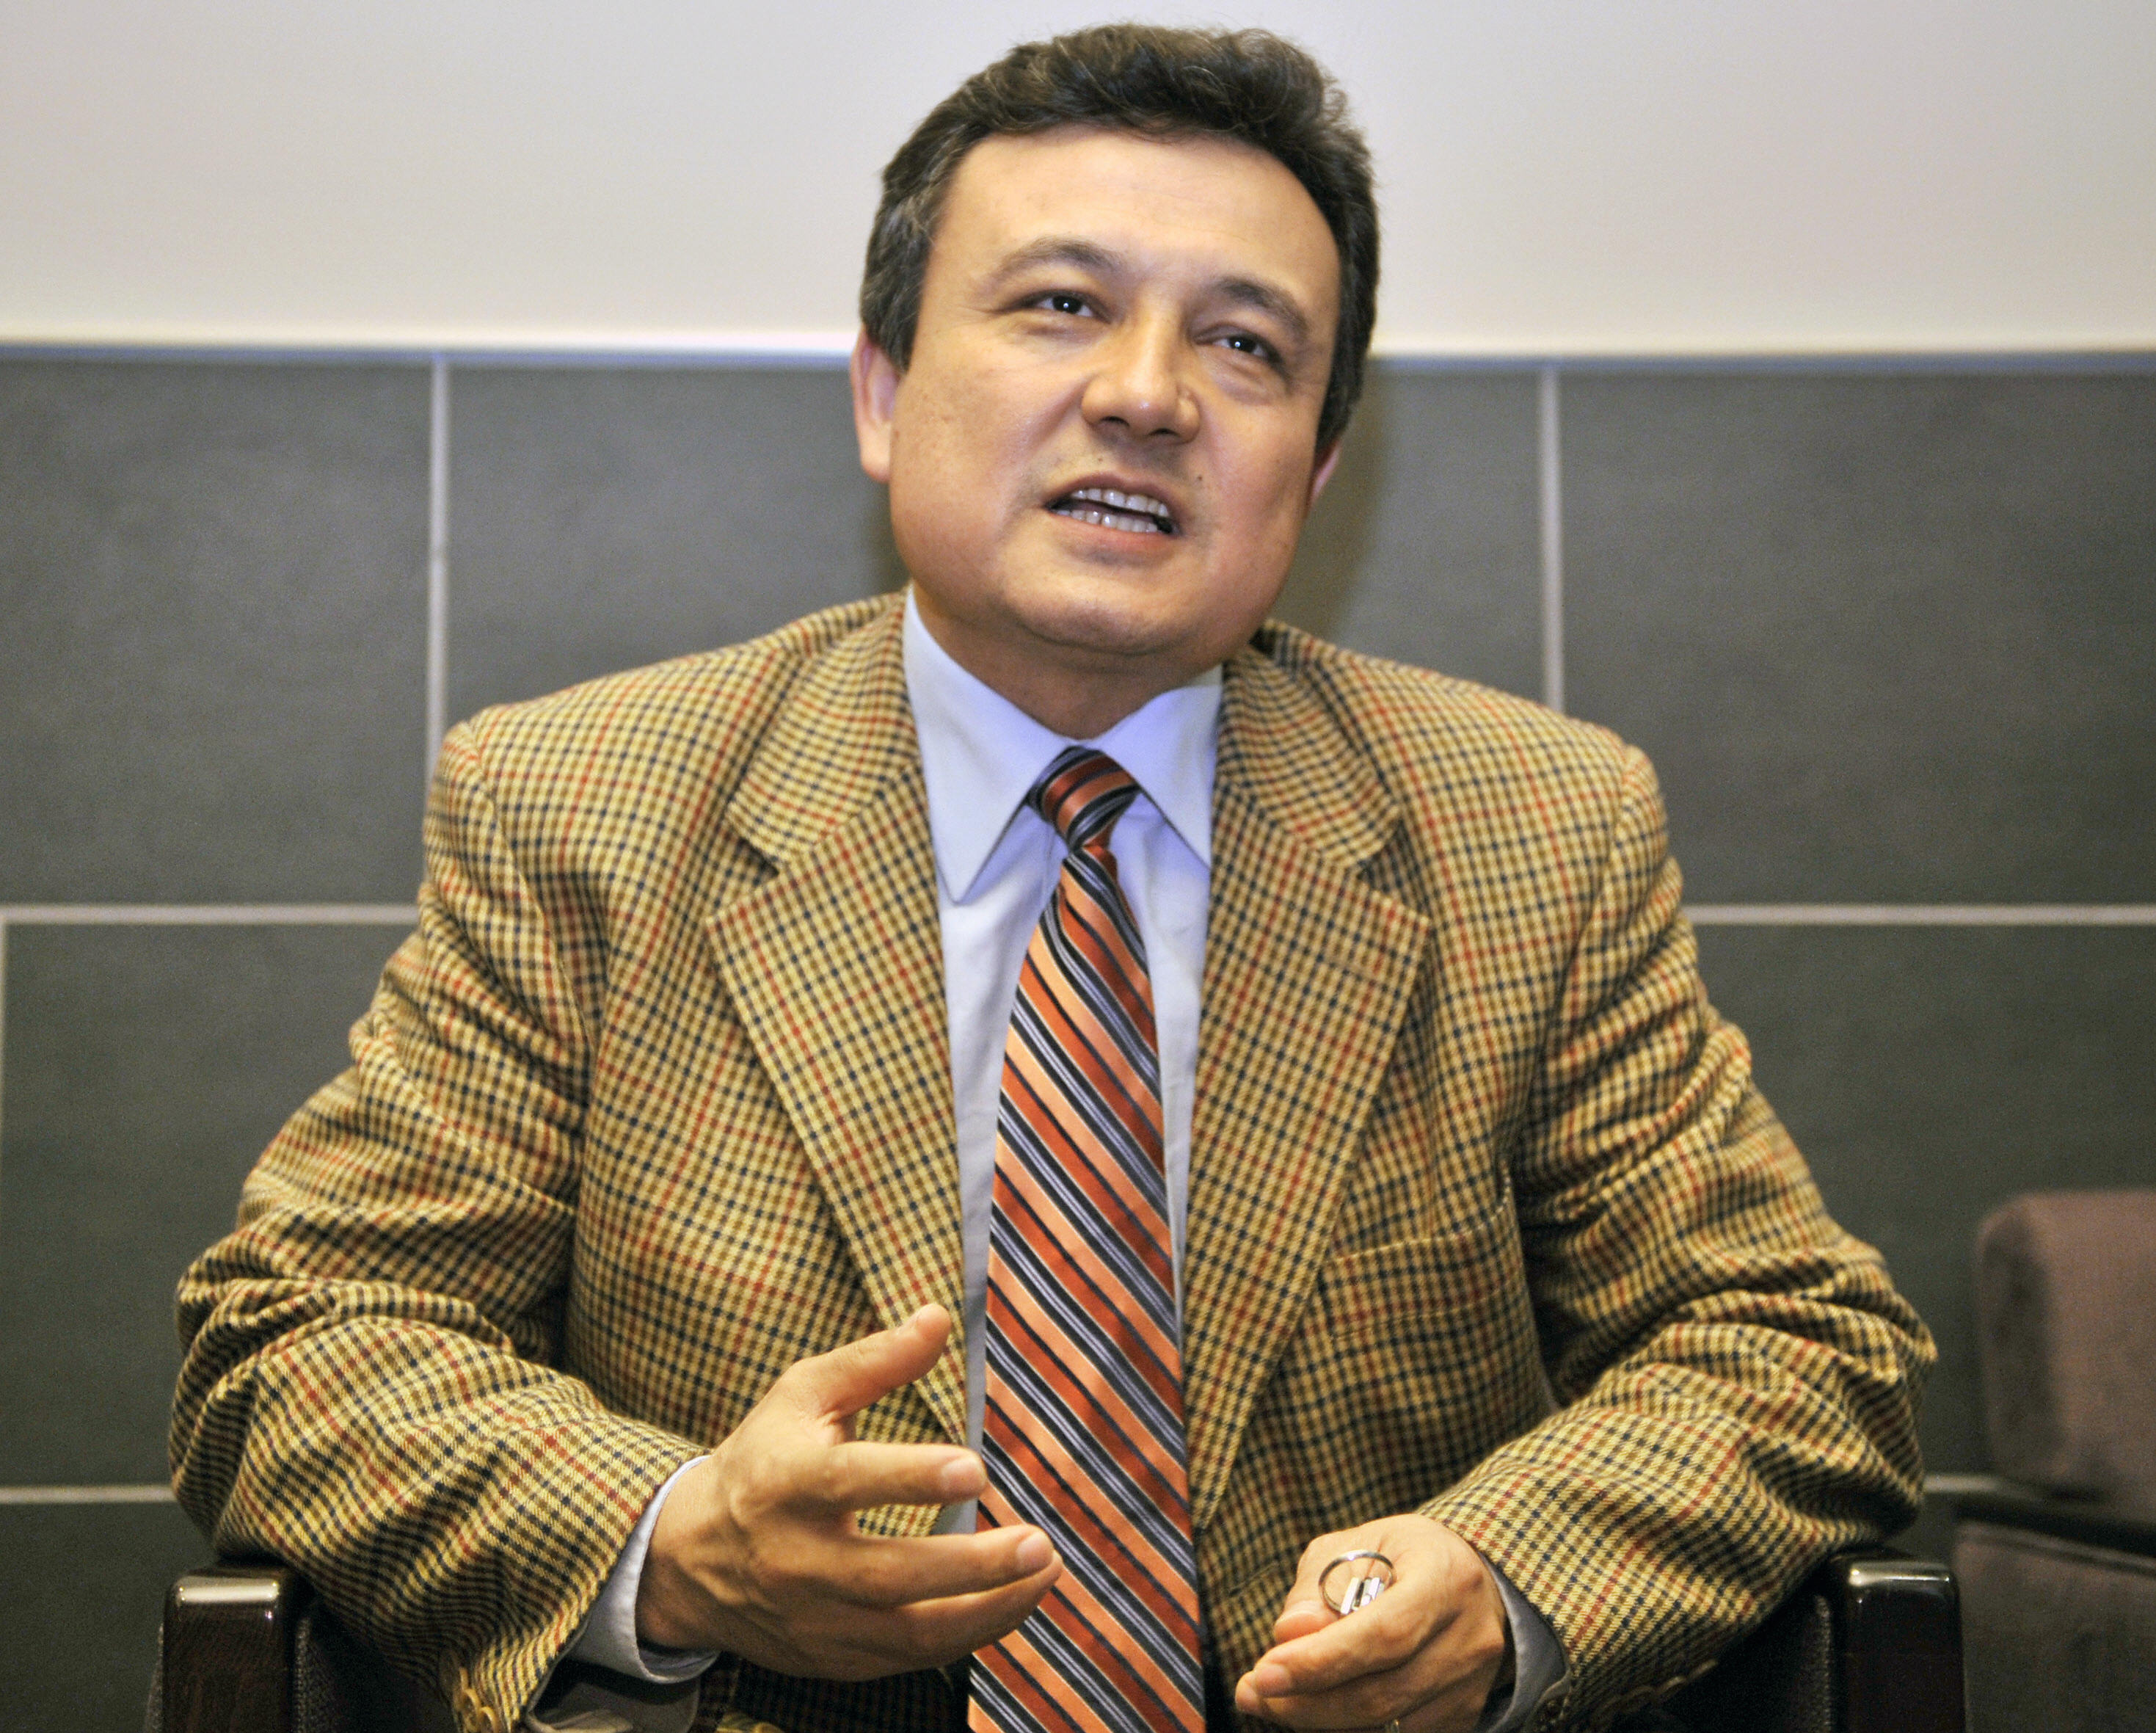 Dolkun Isa, secretary general of the World Uyghur Congress, speaks to a reporter during an interview in Tokyo on May 2, 2008